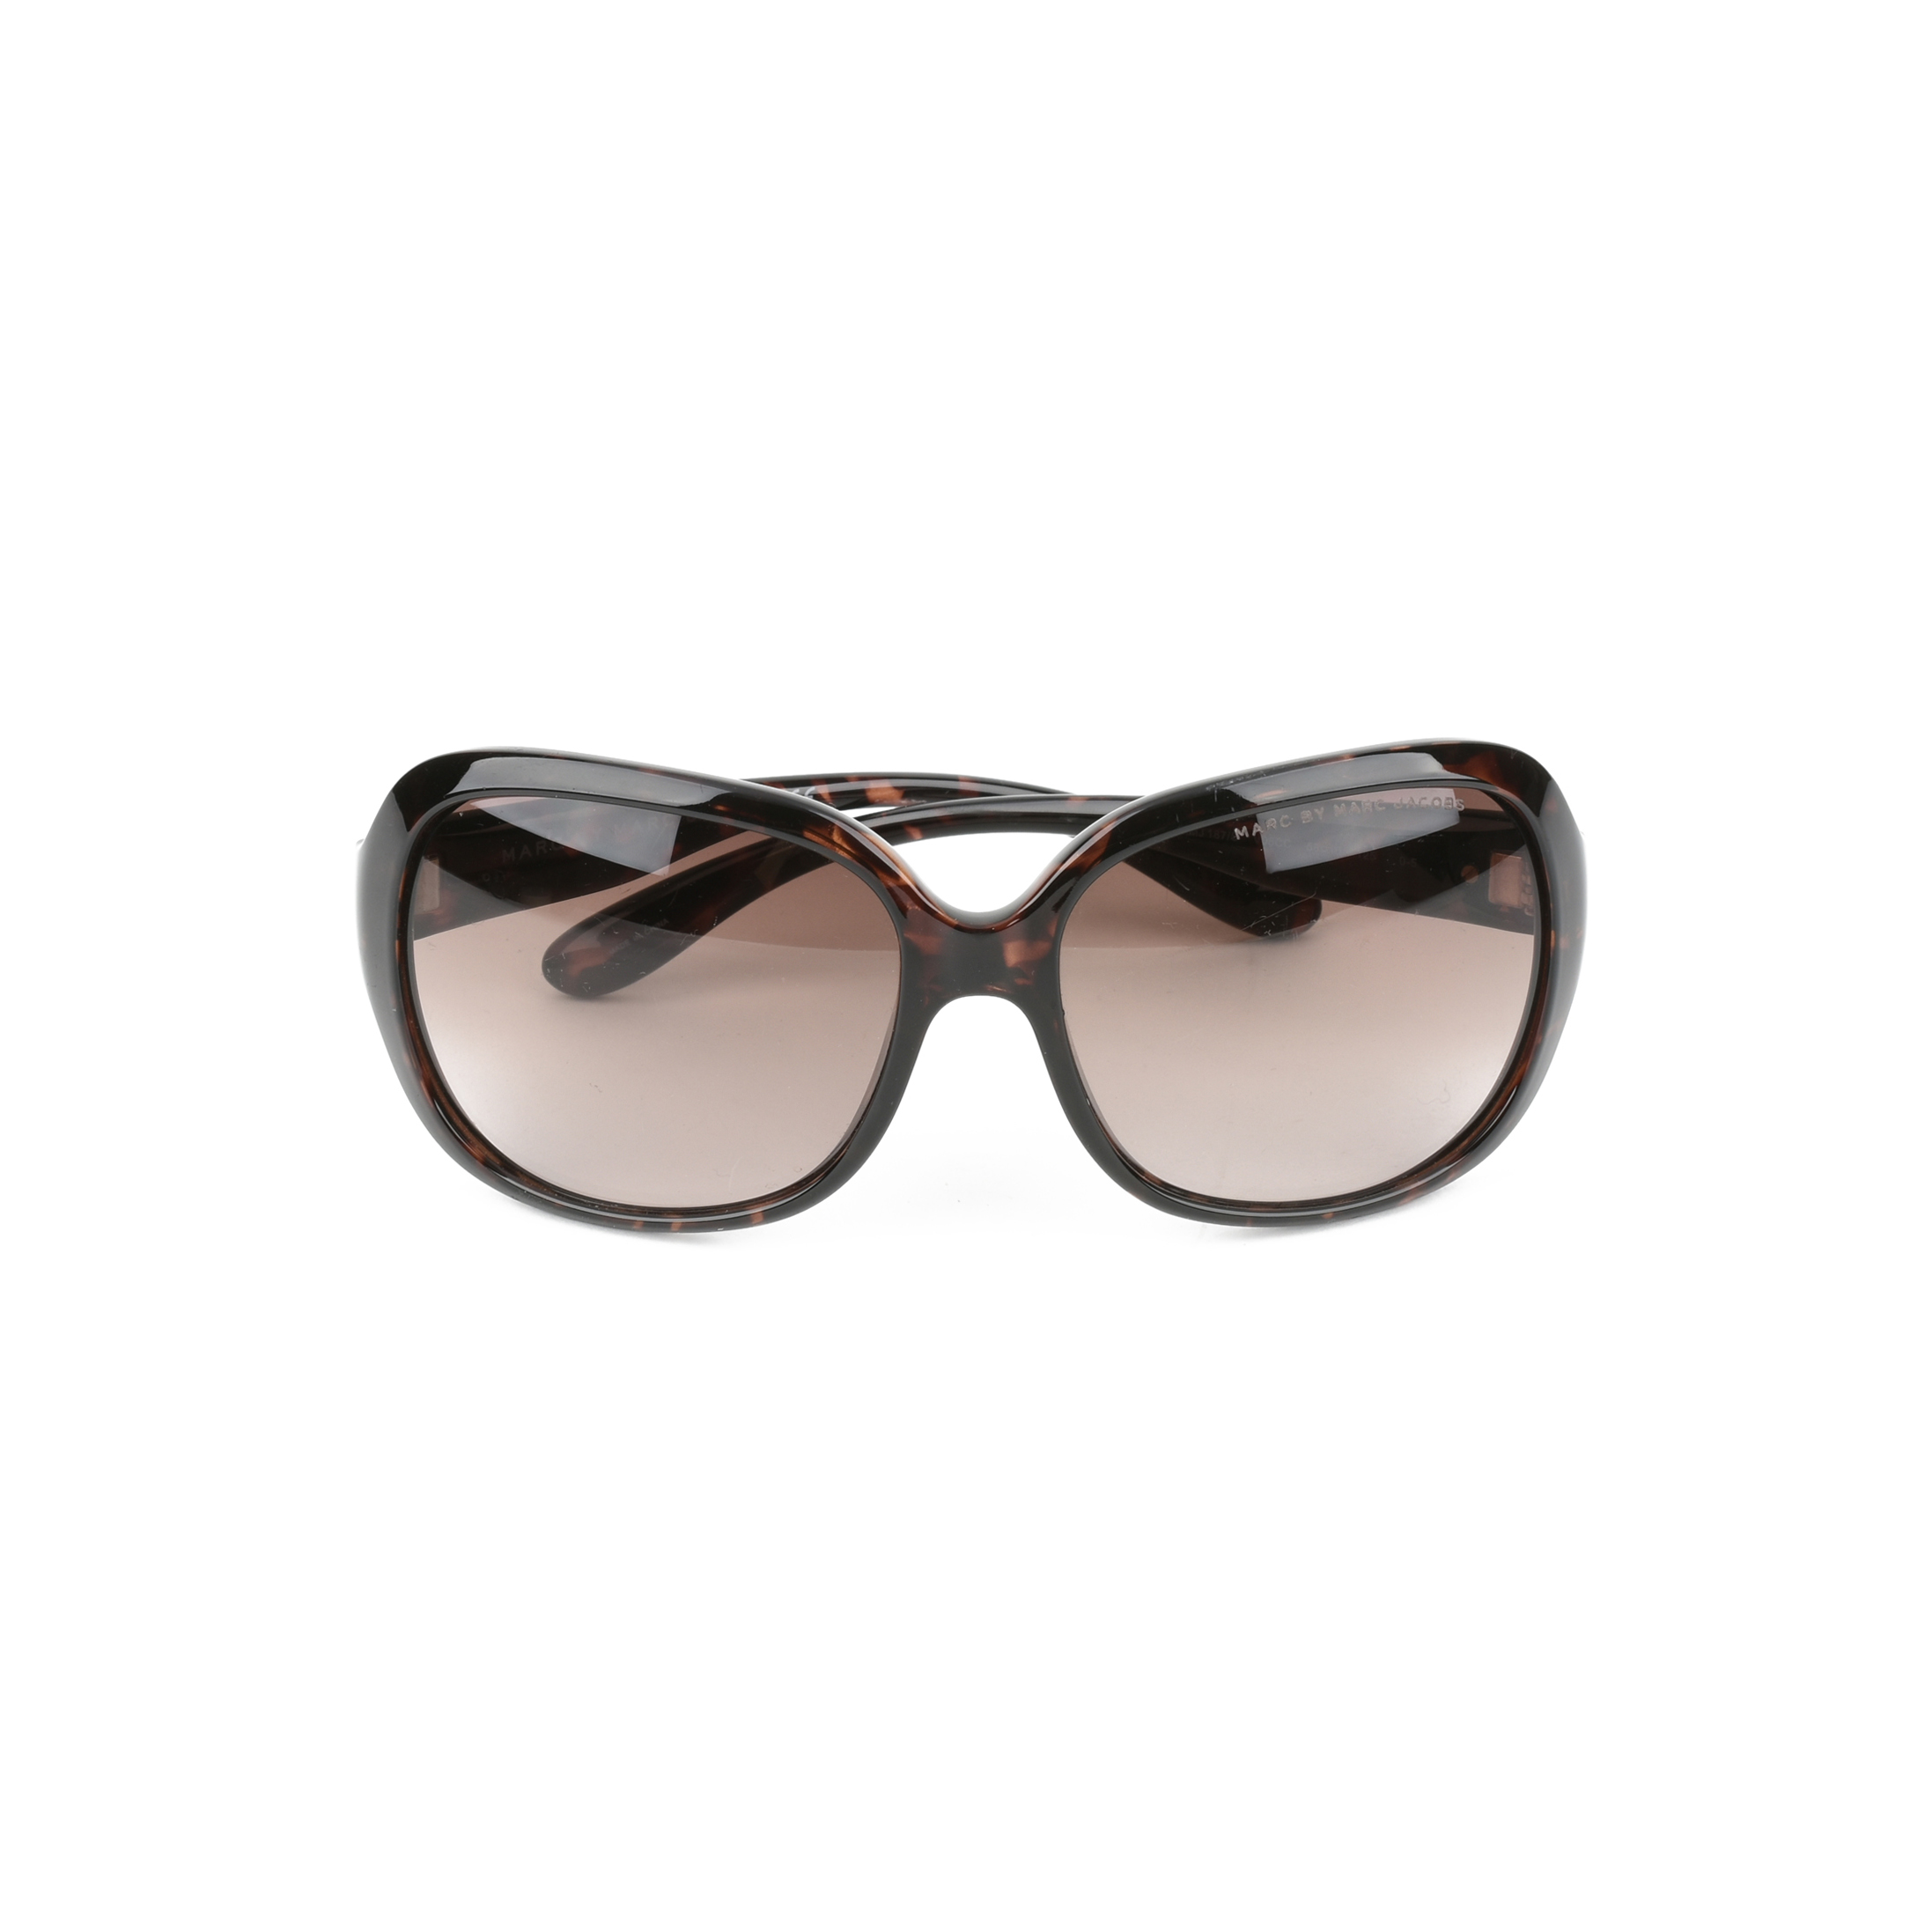 ff3c628259 Authentic Second Hand Marc by Marc Jacobs Round Frame Tortoise Shell  Sunglasses (PSS-153-00010)